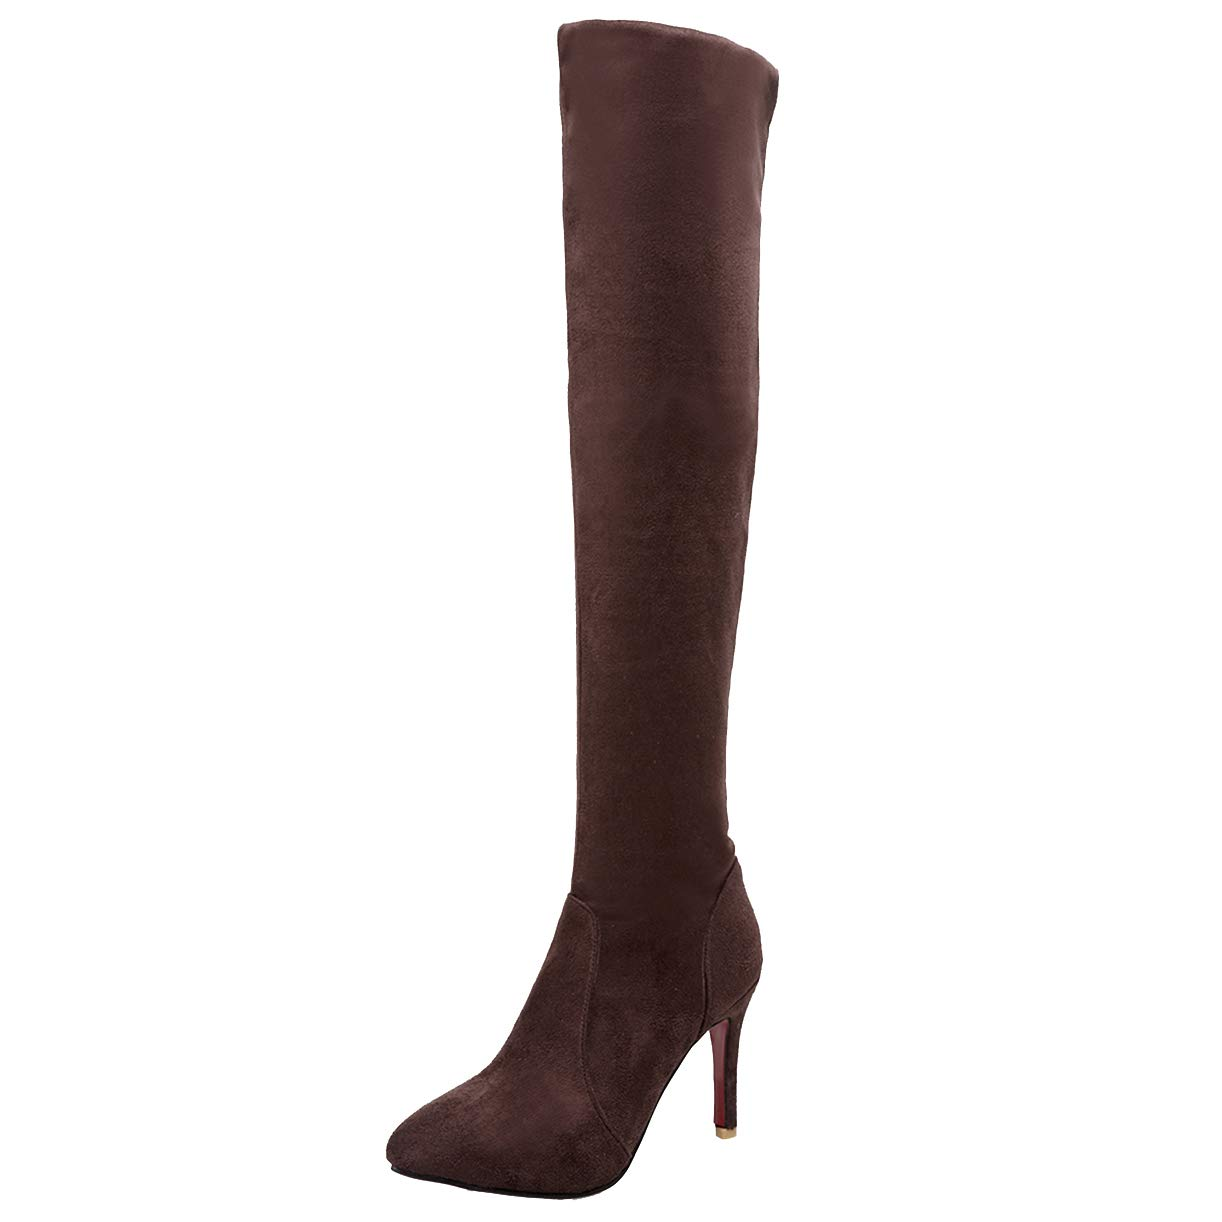 JYshoes , Marron Claquettes 11541 Femme B07DB1NYDF Marron e99aef3 - latesttechnology.space